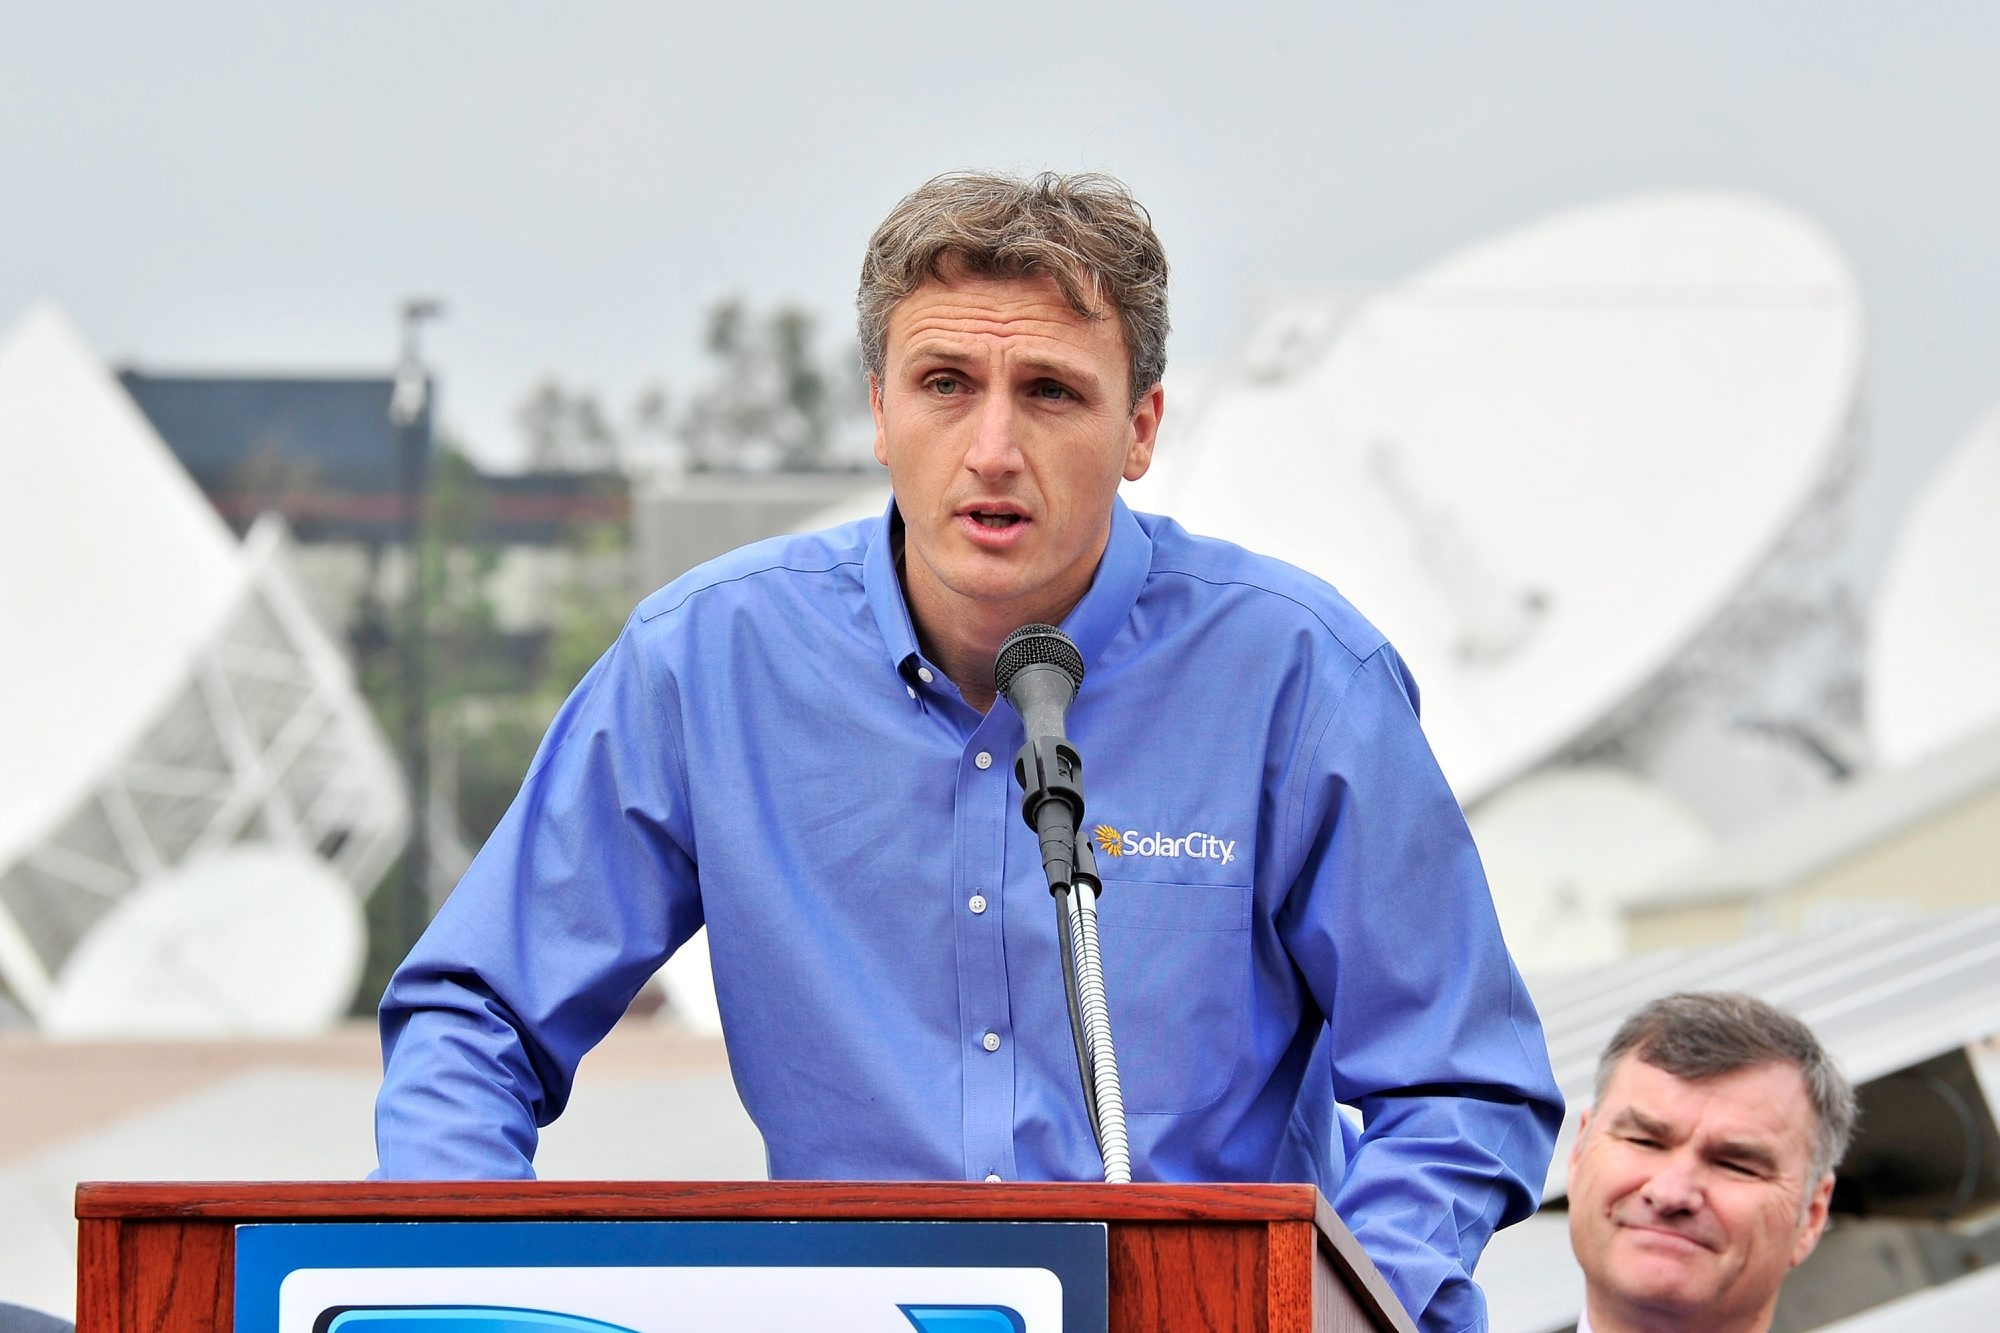 Solar City CEO Lyndon Rive, shown in a file photo, has ordered SolarCity employees not to discuss Tesla bid for company. (Getty Images)